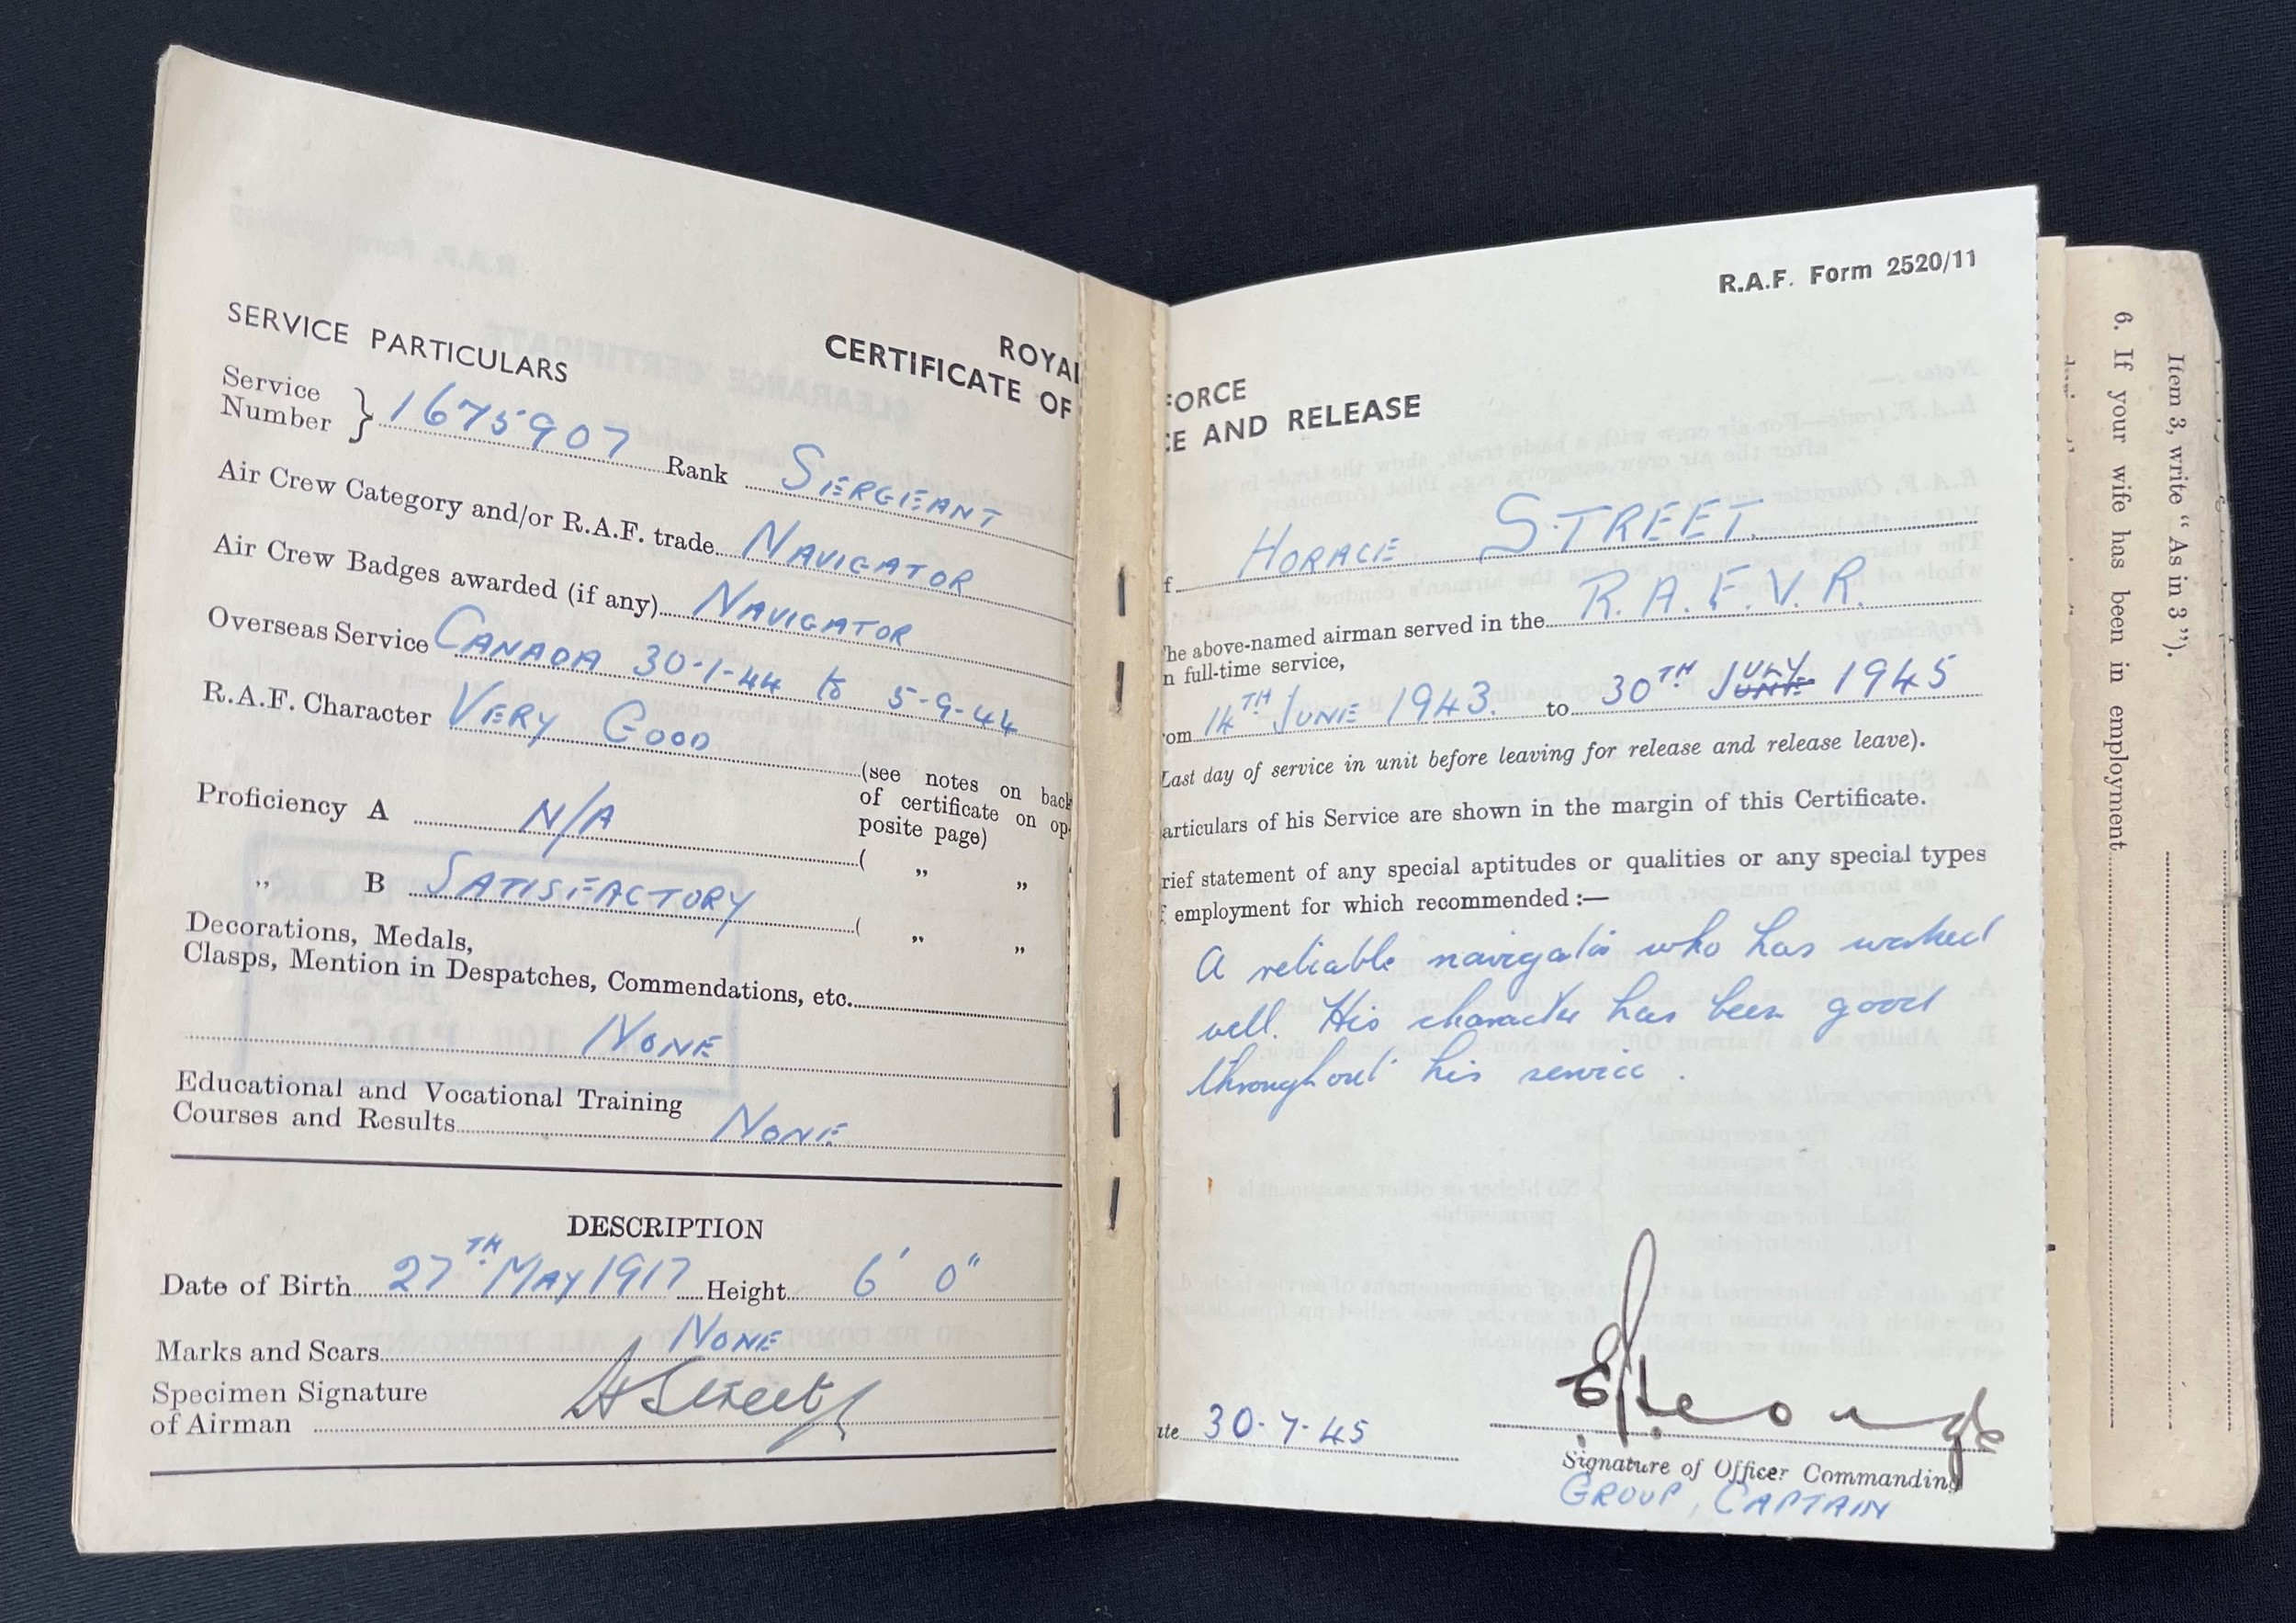 WW2 British RAF Navigators Log book, Service & Release Book and Medals to 1675907 Sgt Horace Street, - Image 9 of 11